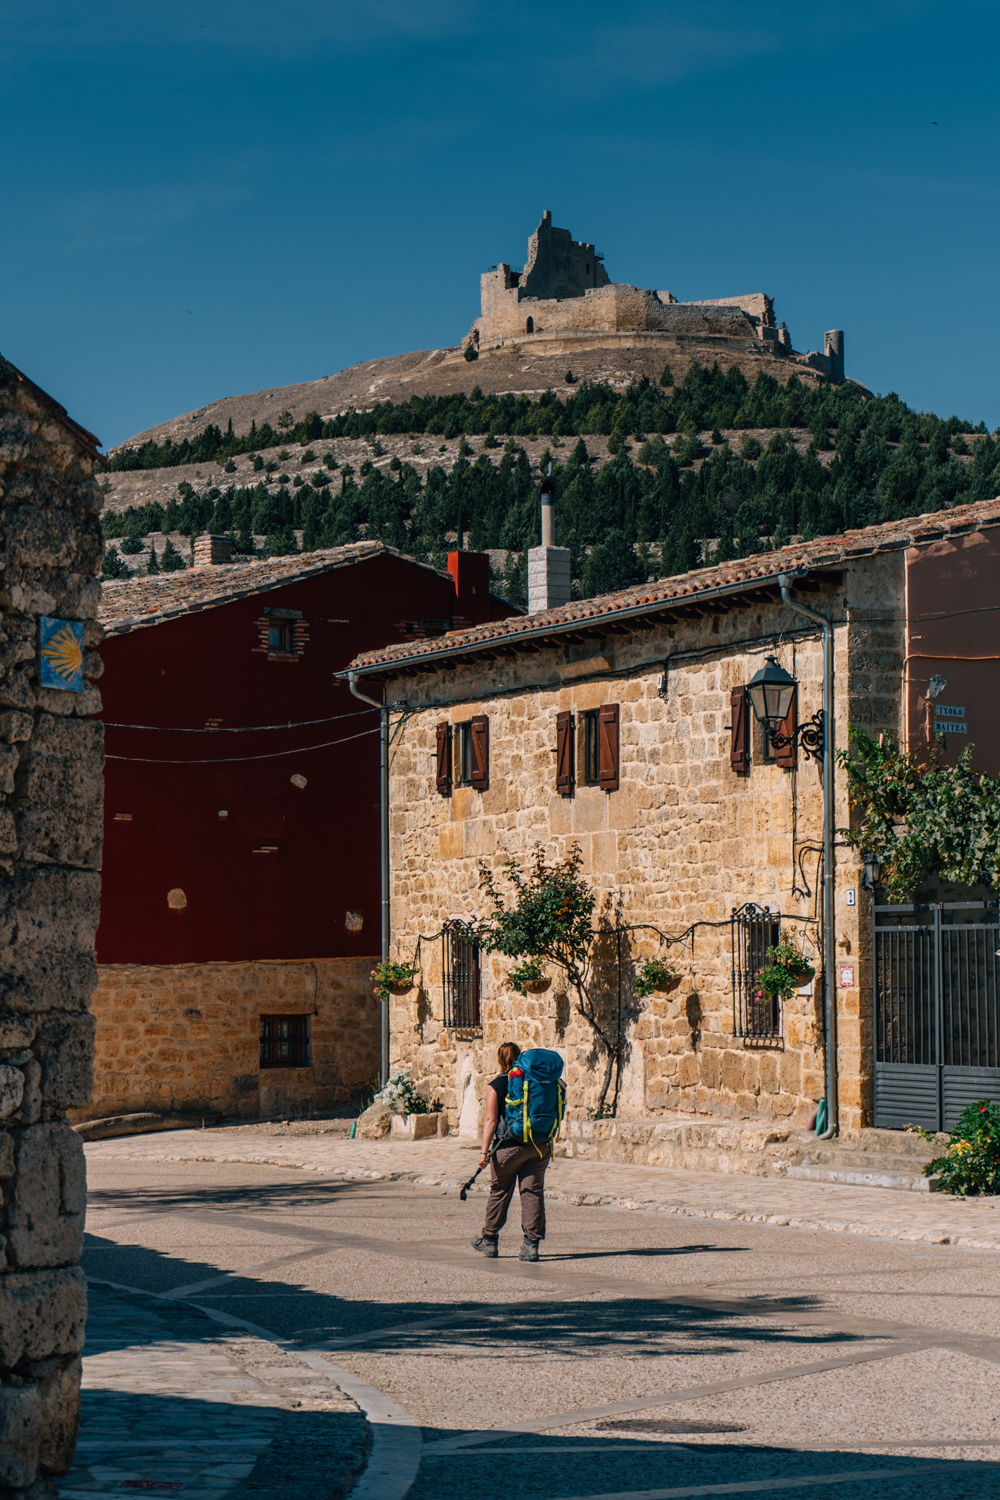 Coming into Castrojeriz with the guiding symbol of the scallop shell always present